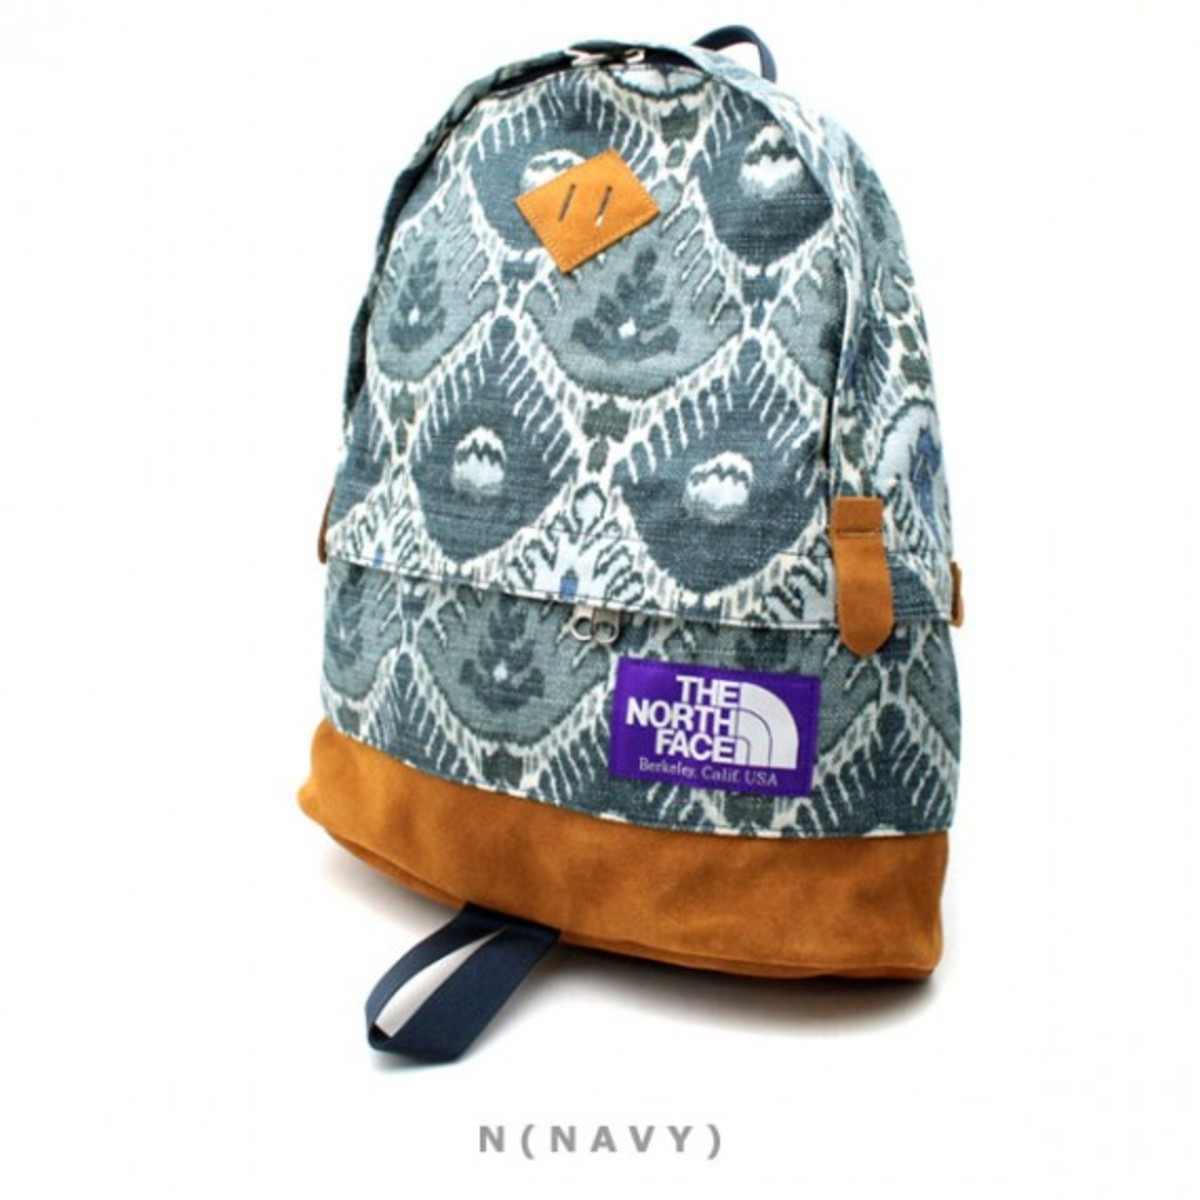 the-north-face-purple-label-fall-2012-bag-collection-11